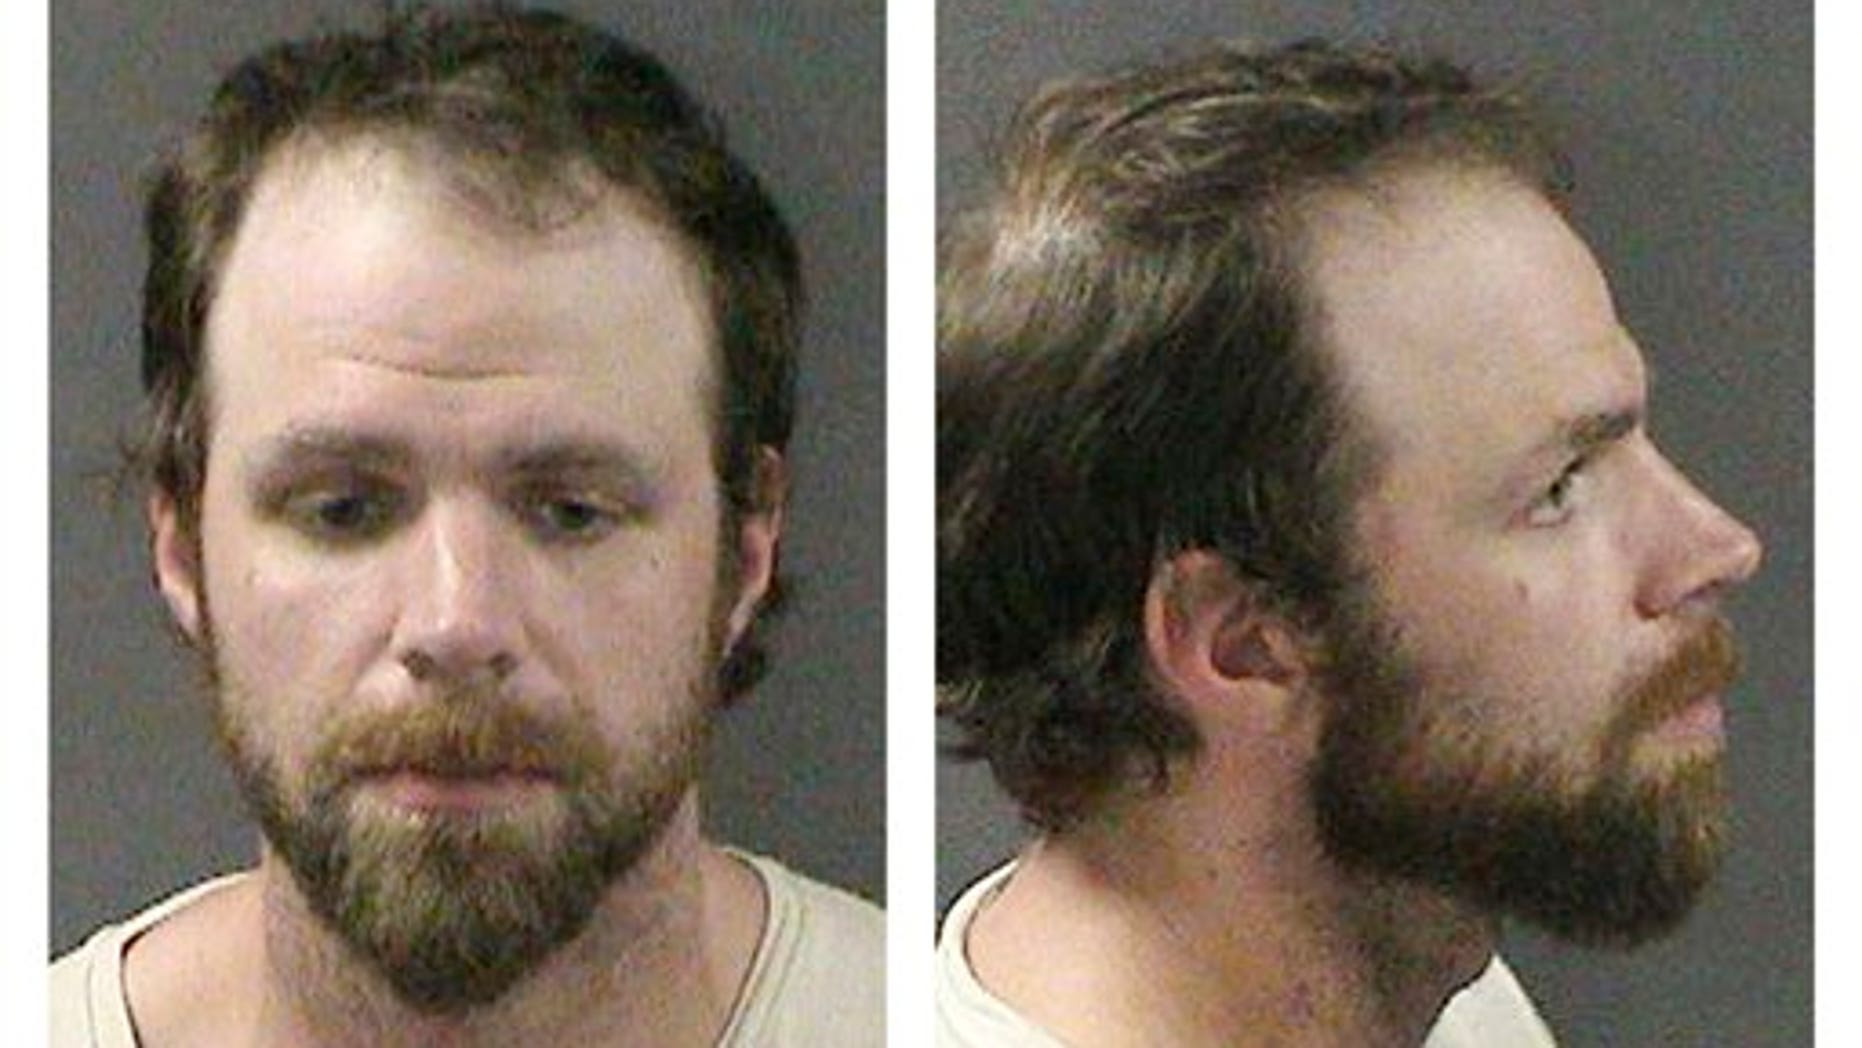 These Sunday, July 10, 2011 booking photos released by the Attleboro, Mass., Police Department shows Michael Todd, bass player for the rock band Coheed and Cambria. Alttleboro police arrested Todd, of Anaheim, Calif., Sunday and charged him with robbing a pharmacy of prescription painkillers just hours before a show. (AP)